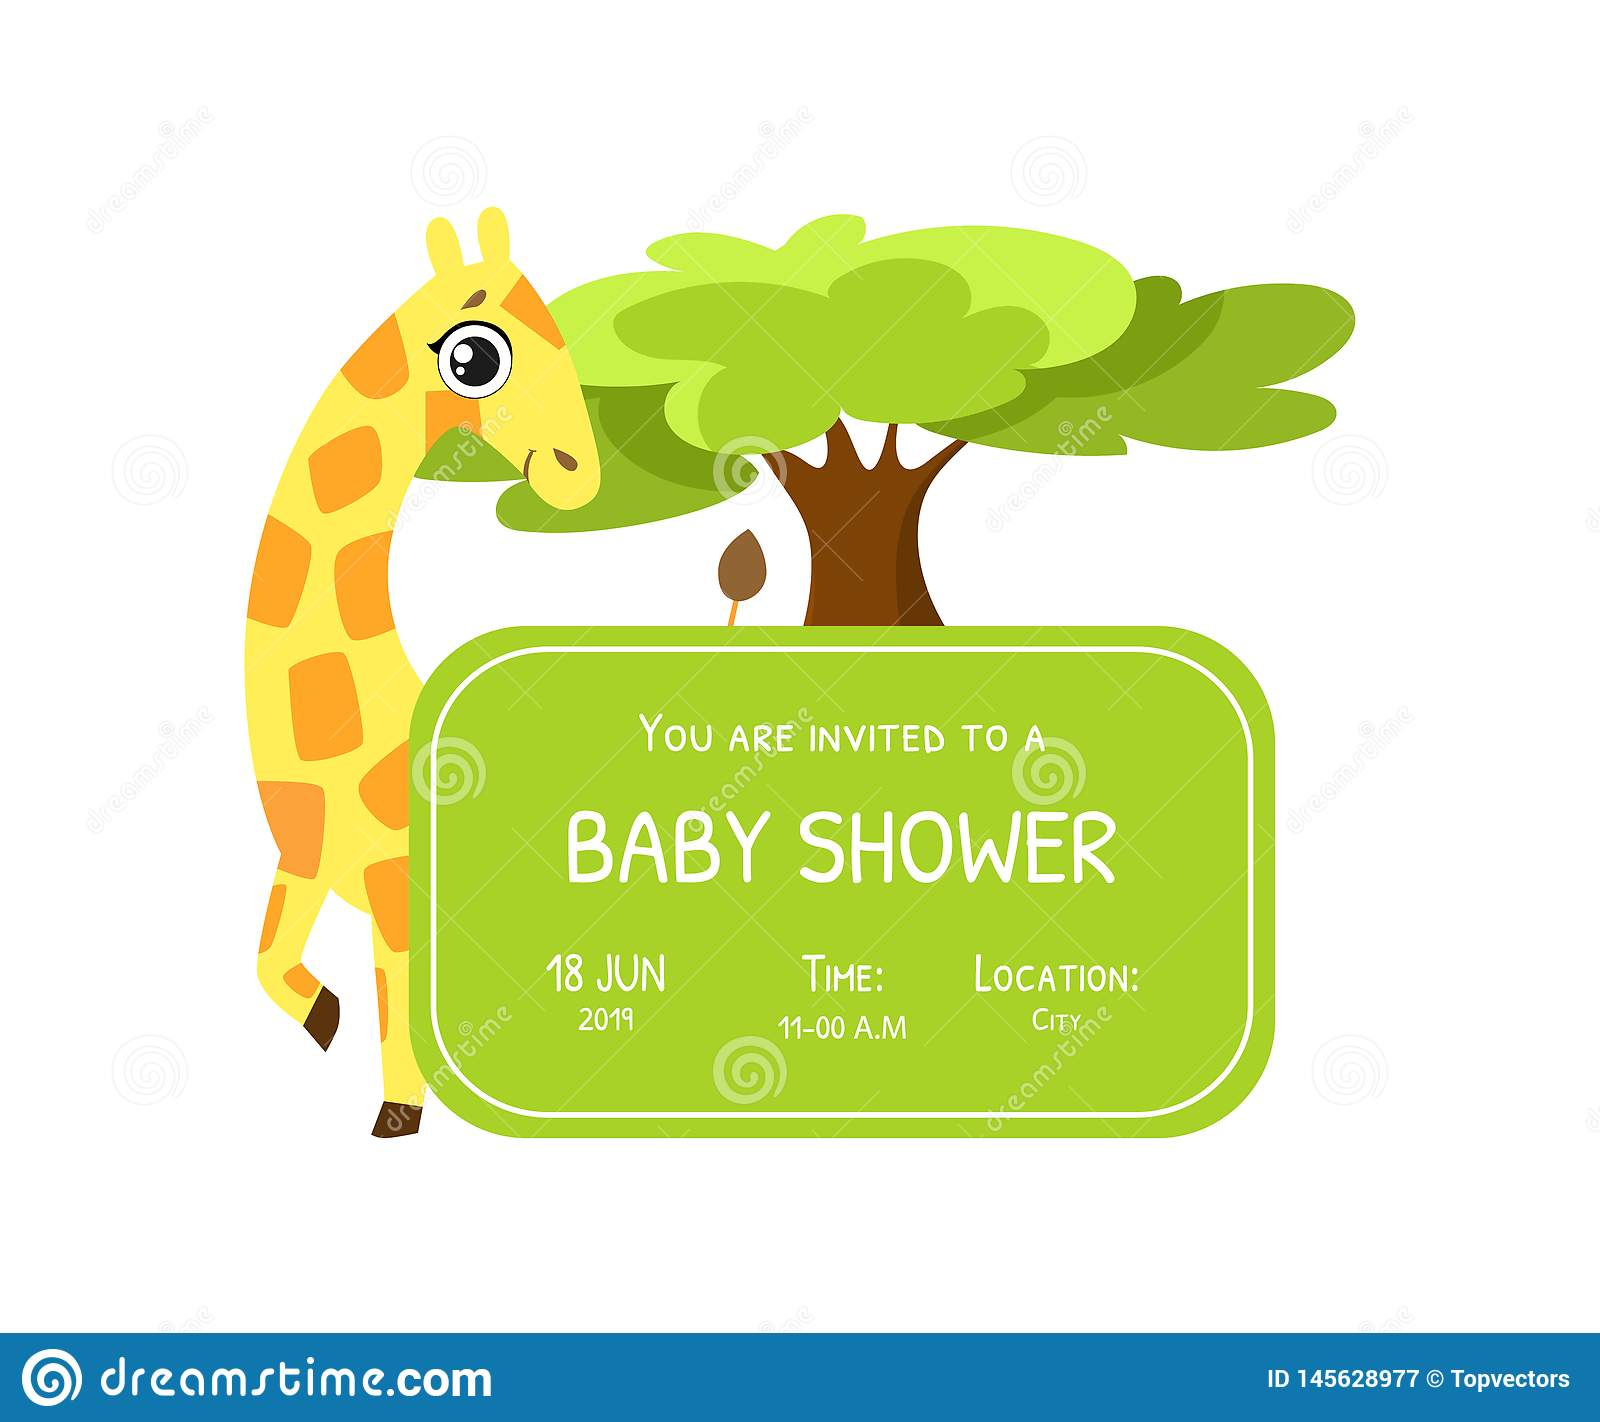 Baby Shower Invitation Template Card With Cute Giraffe And